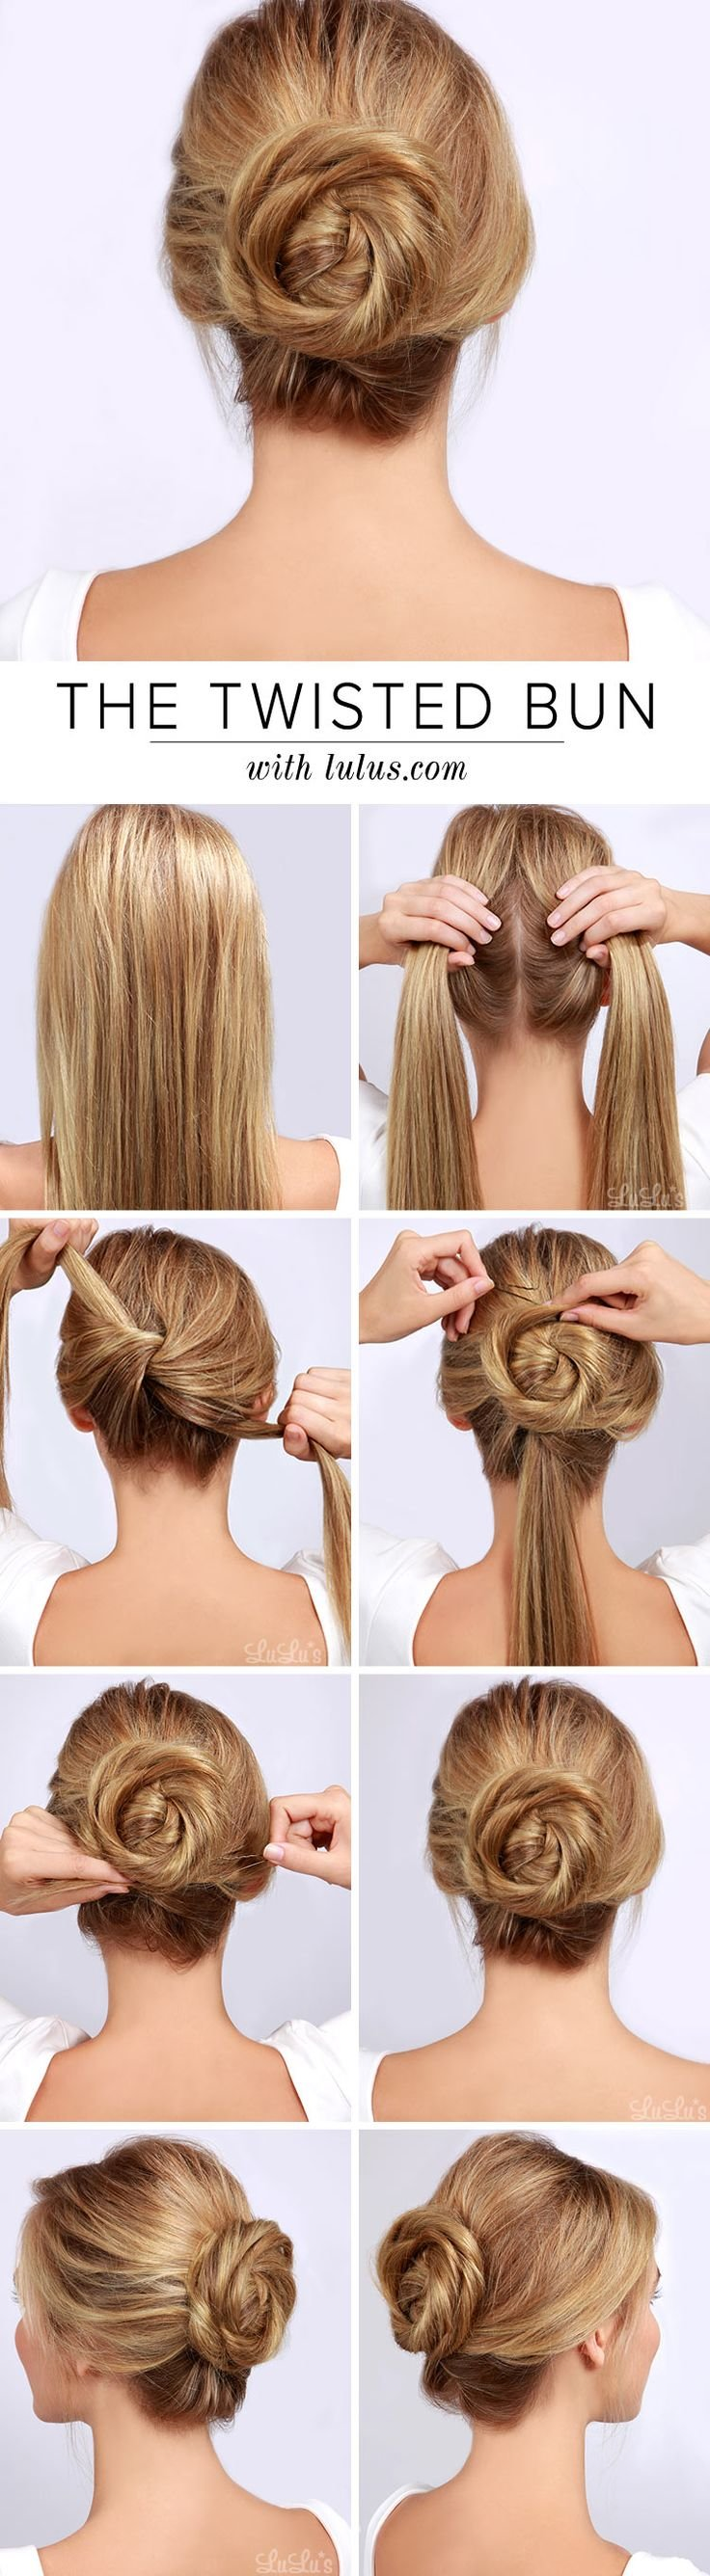 Twisted Bun Hair Tutorial offers a few simple steps to make your dream hair style a reality.